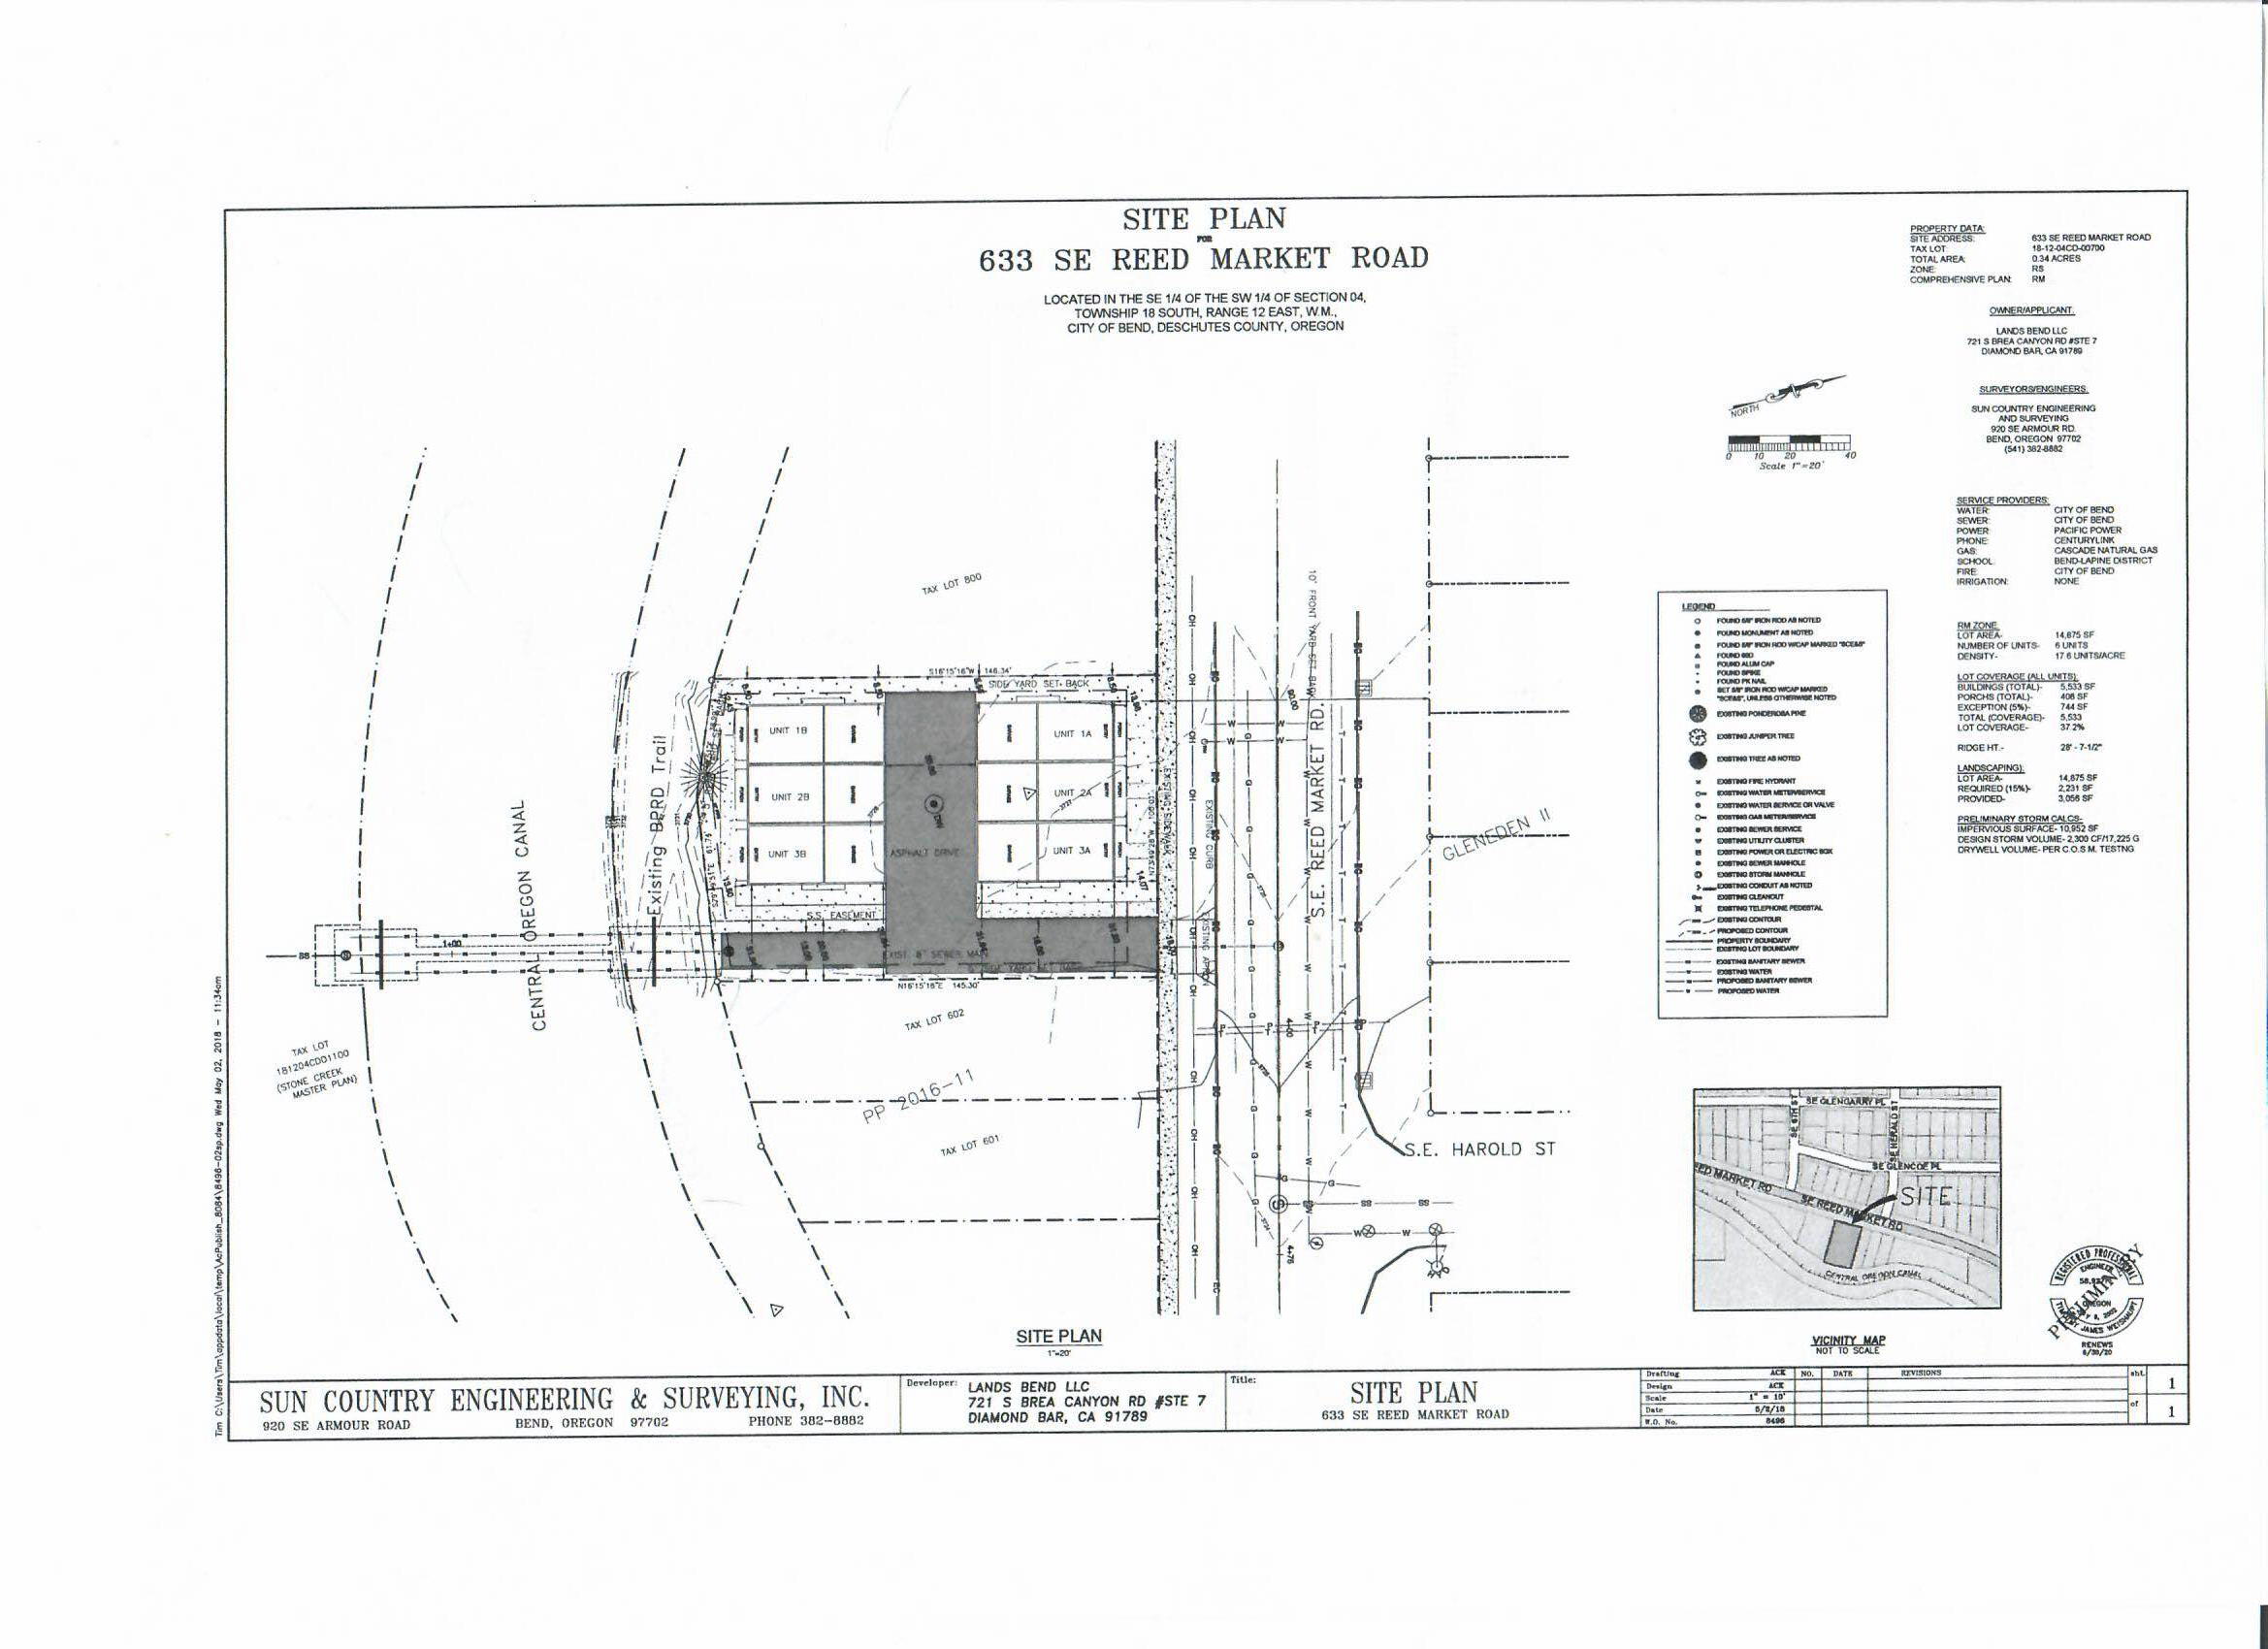 6 Units Proposed For 633 Reed Market Rd